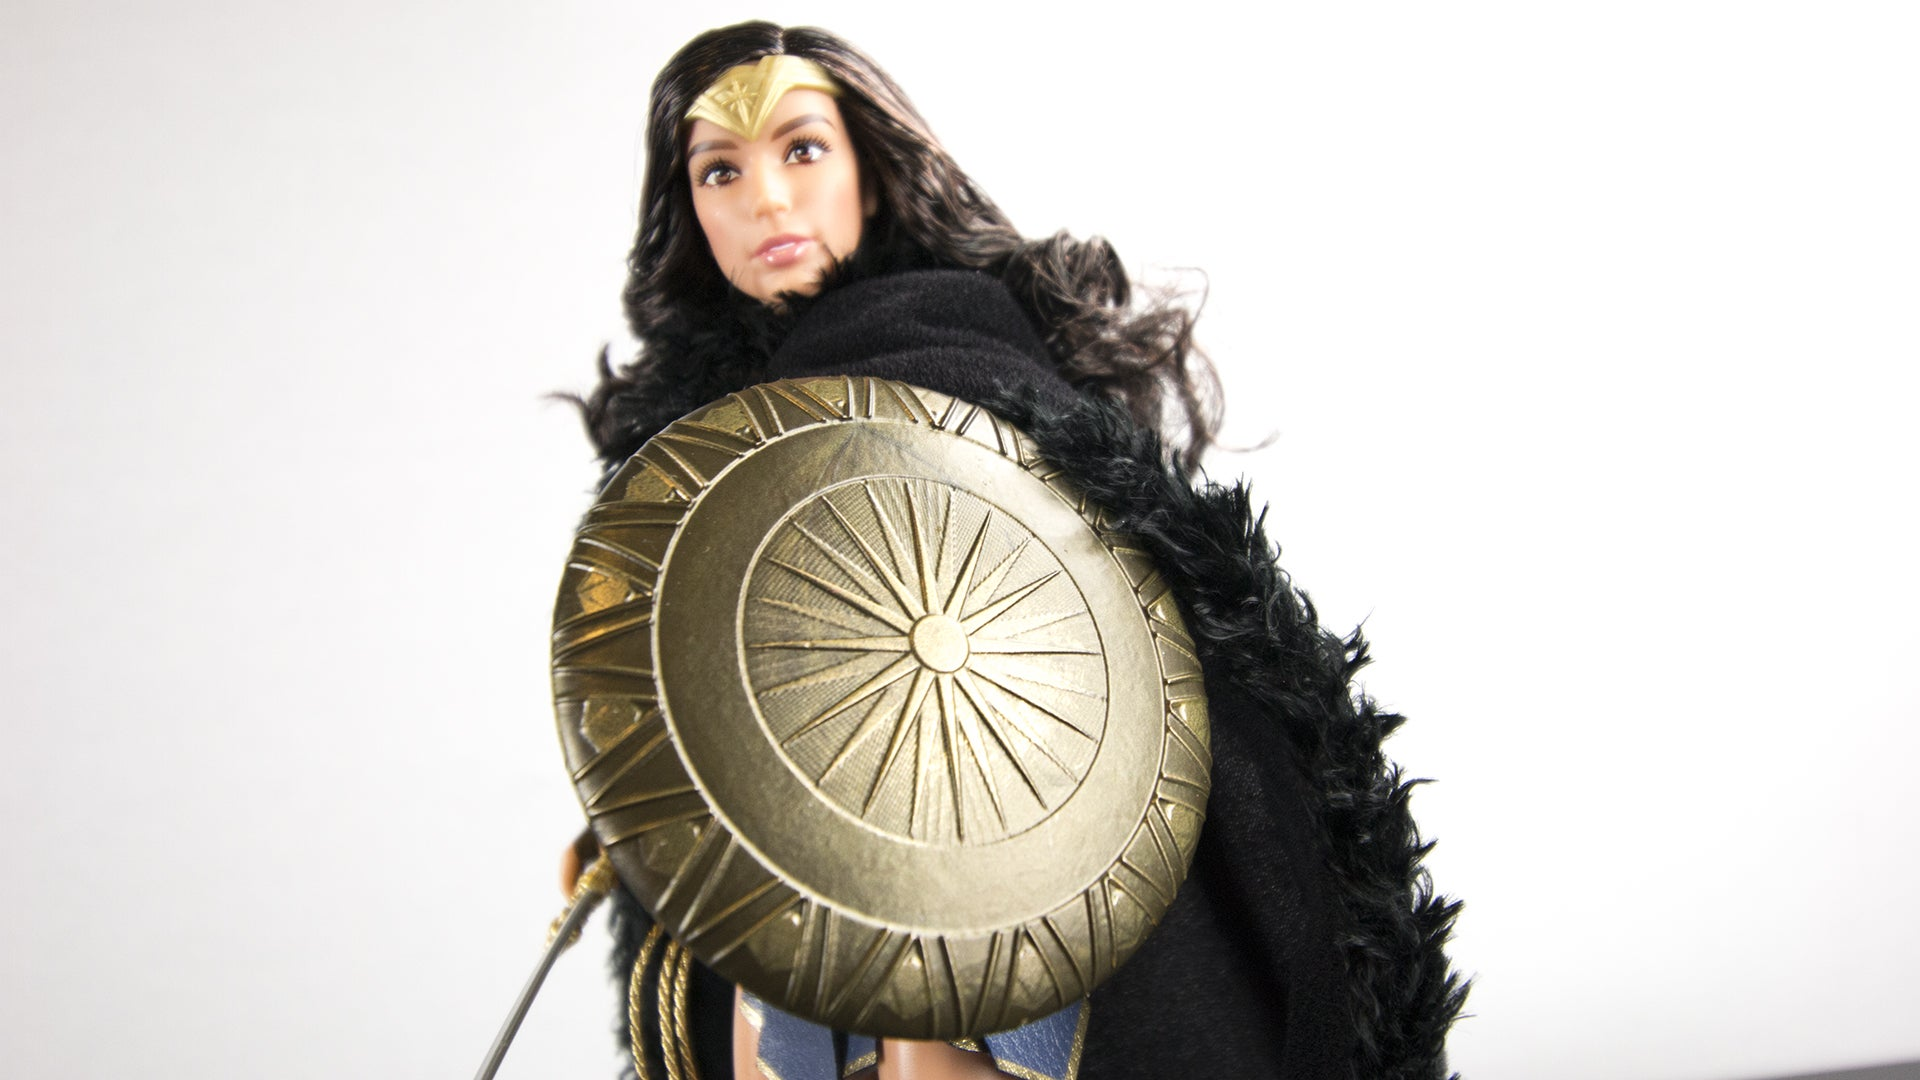 Doll review 2017 black label queen hippolyta doll face three - The Black Label Wonder Woman Barbie Collection Dolls Are Available Now In Stores Or At The Barbie Collection Website Where All Three Are Bundled Together